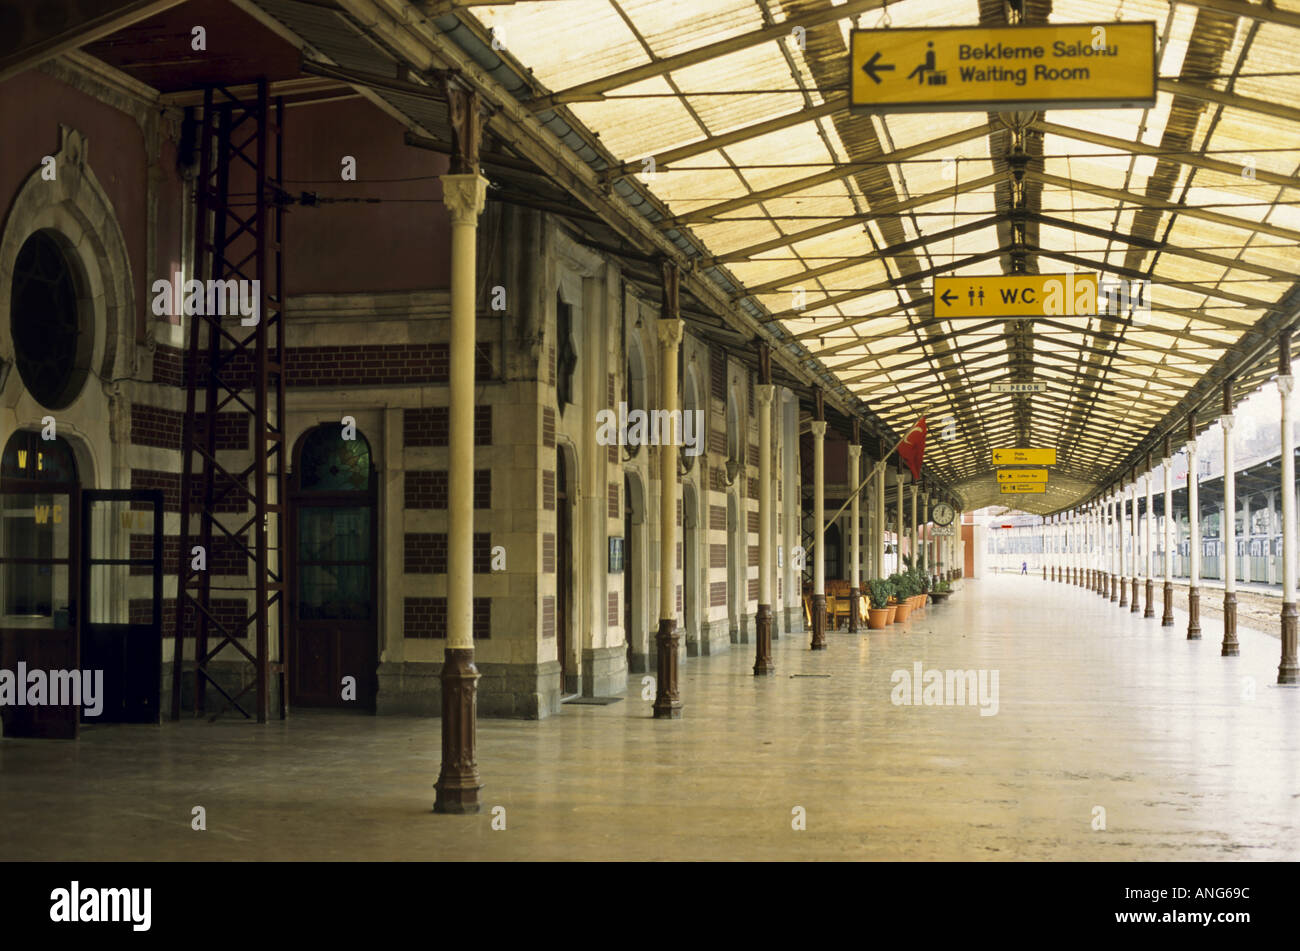 Central railway station building and platform, Istanbul, Turkey. - Stock Image